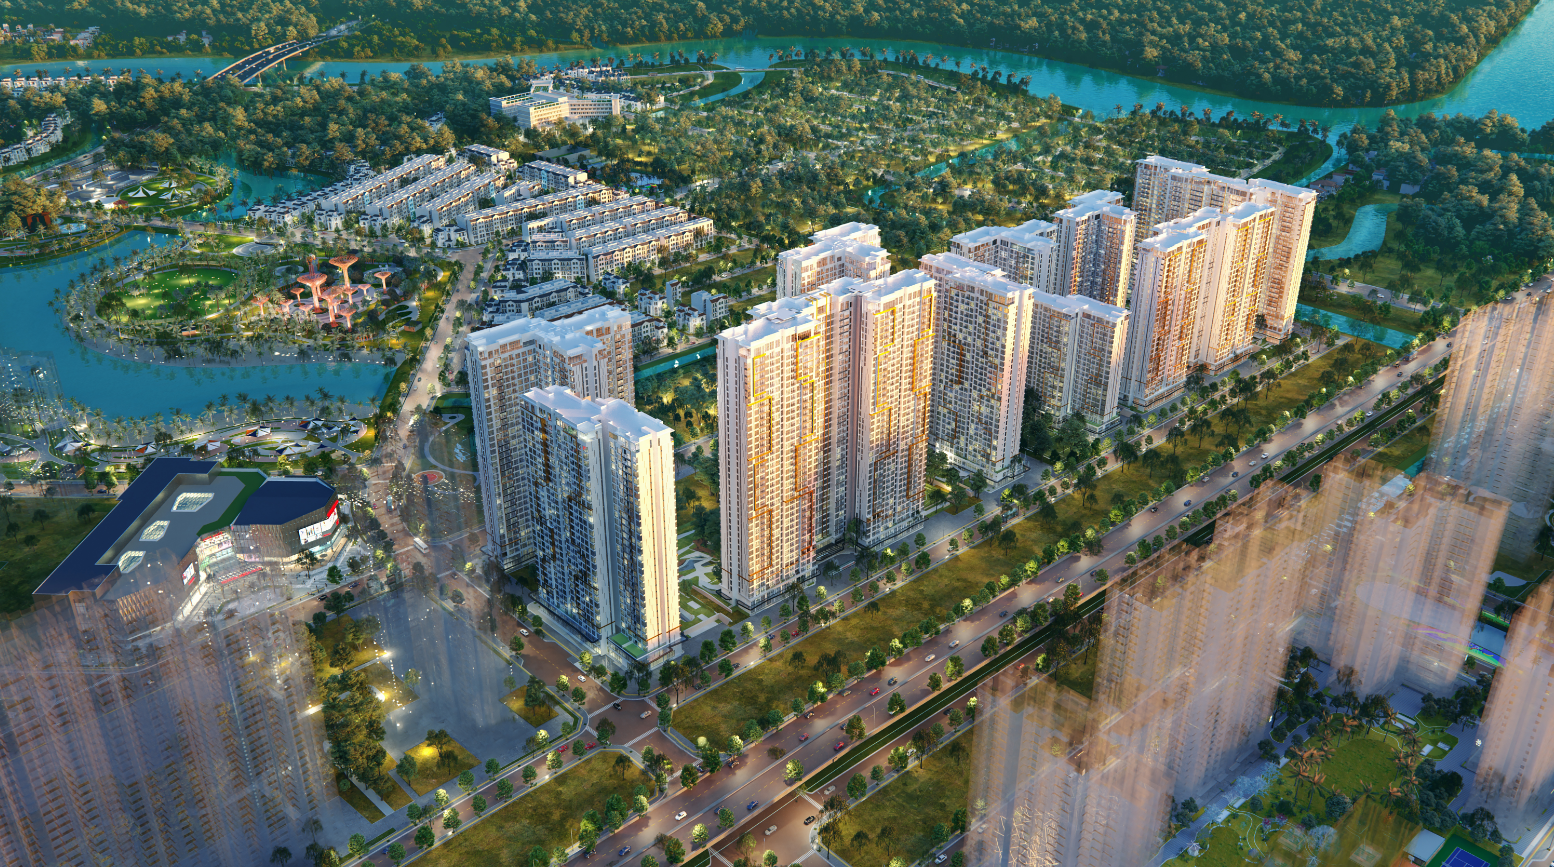 Masteri Centre Point is the pioneer luxury lifestyle project in the new Thu Duc City under Ho Chi Minh City.